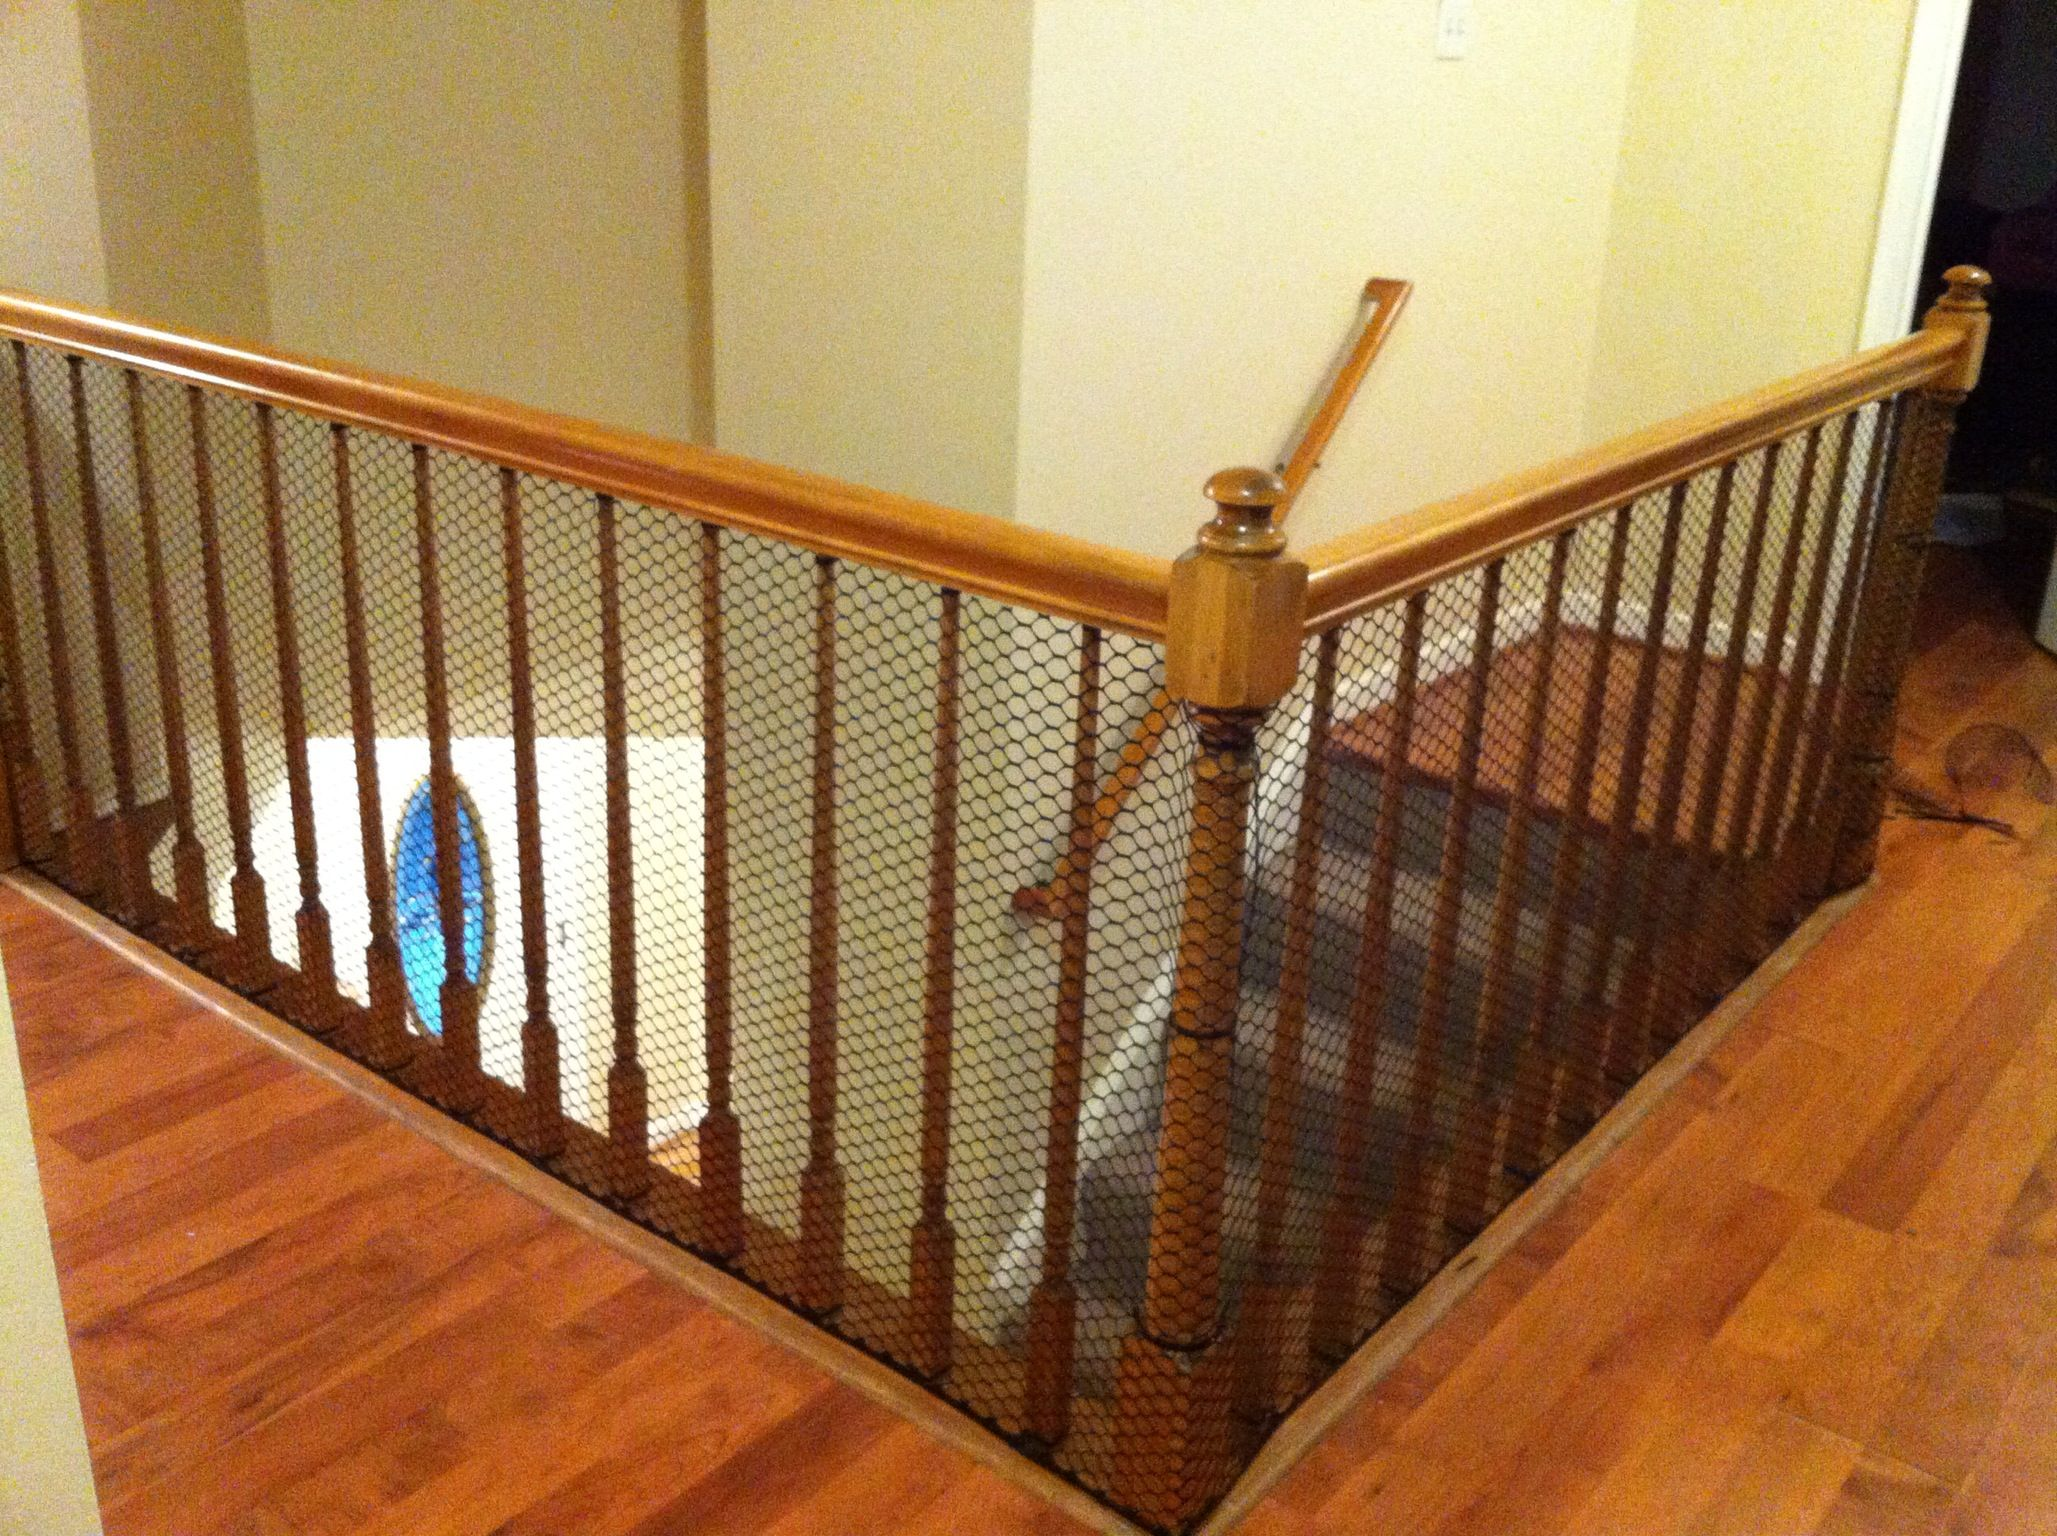 Cheap Way To Child Proof A Stairway With Banisters Which Are Too